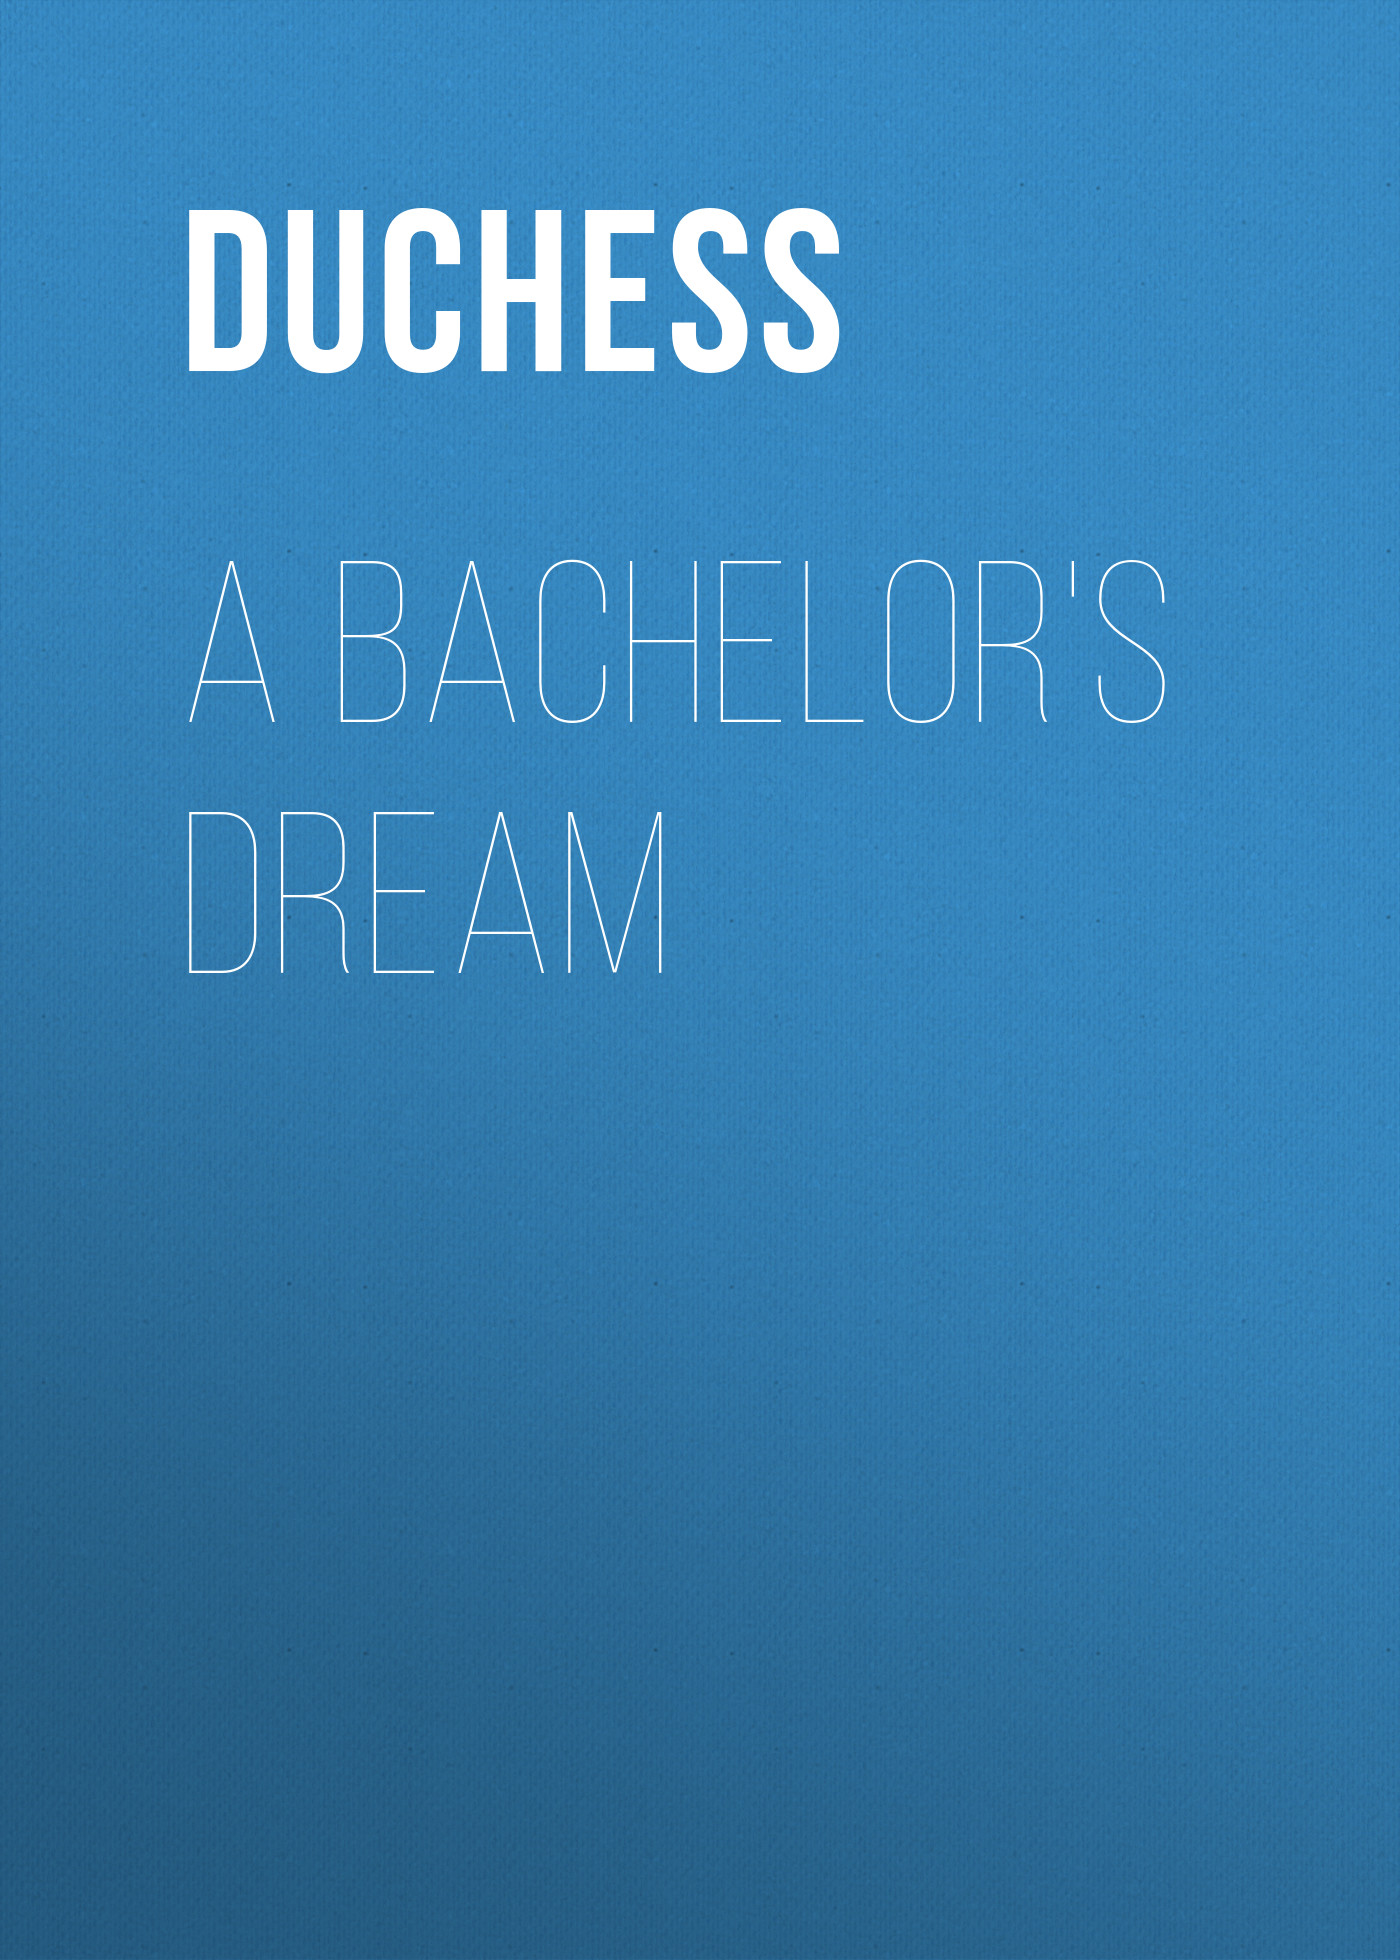 Duchess A Bachelor's Dream duchess a bachelor s dream